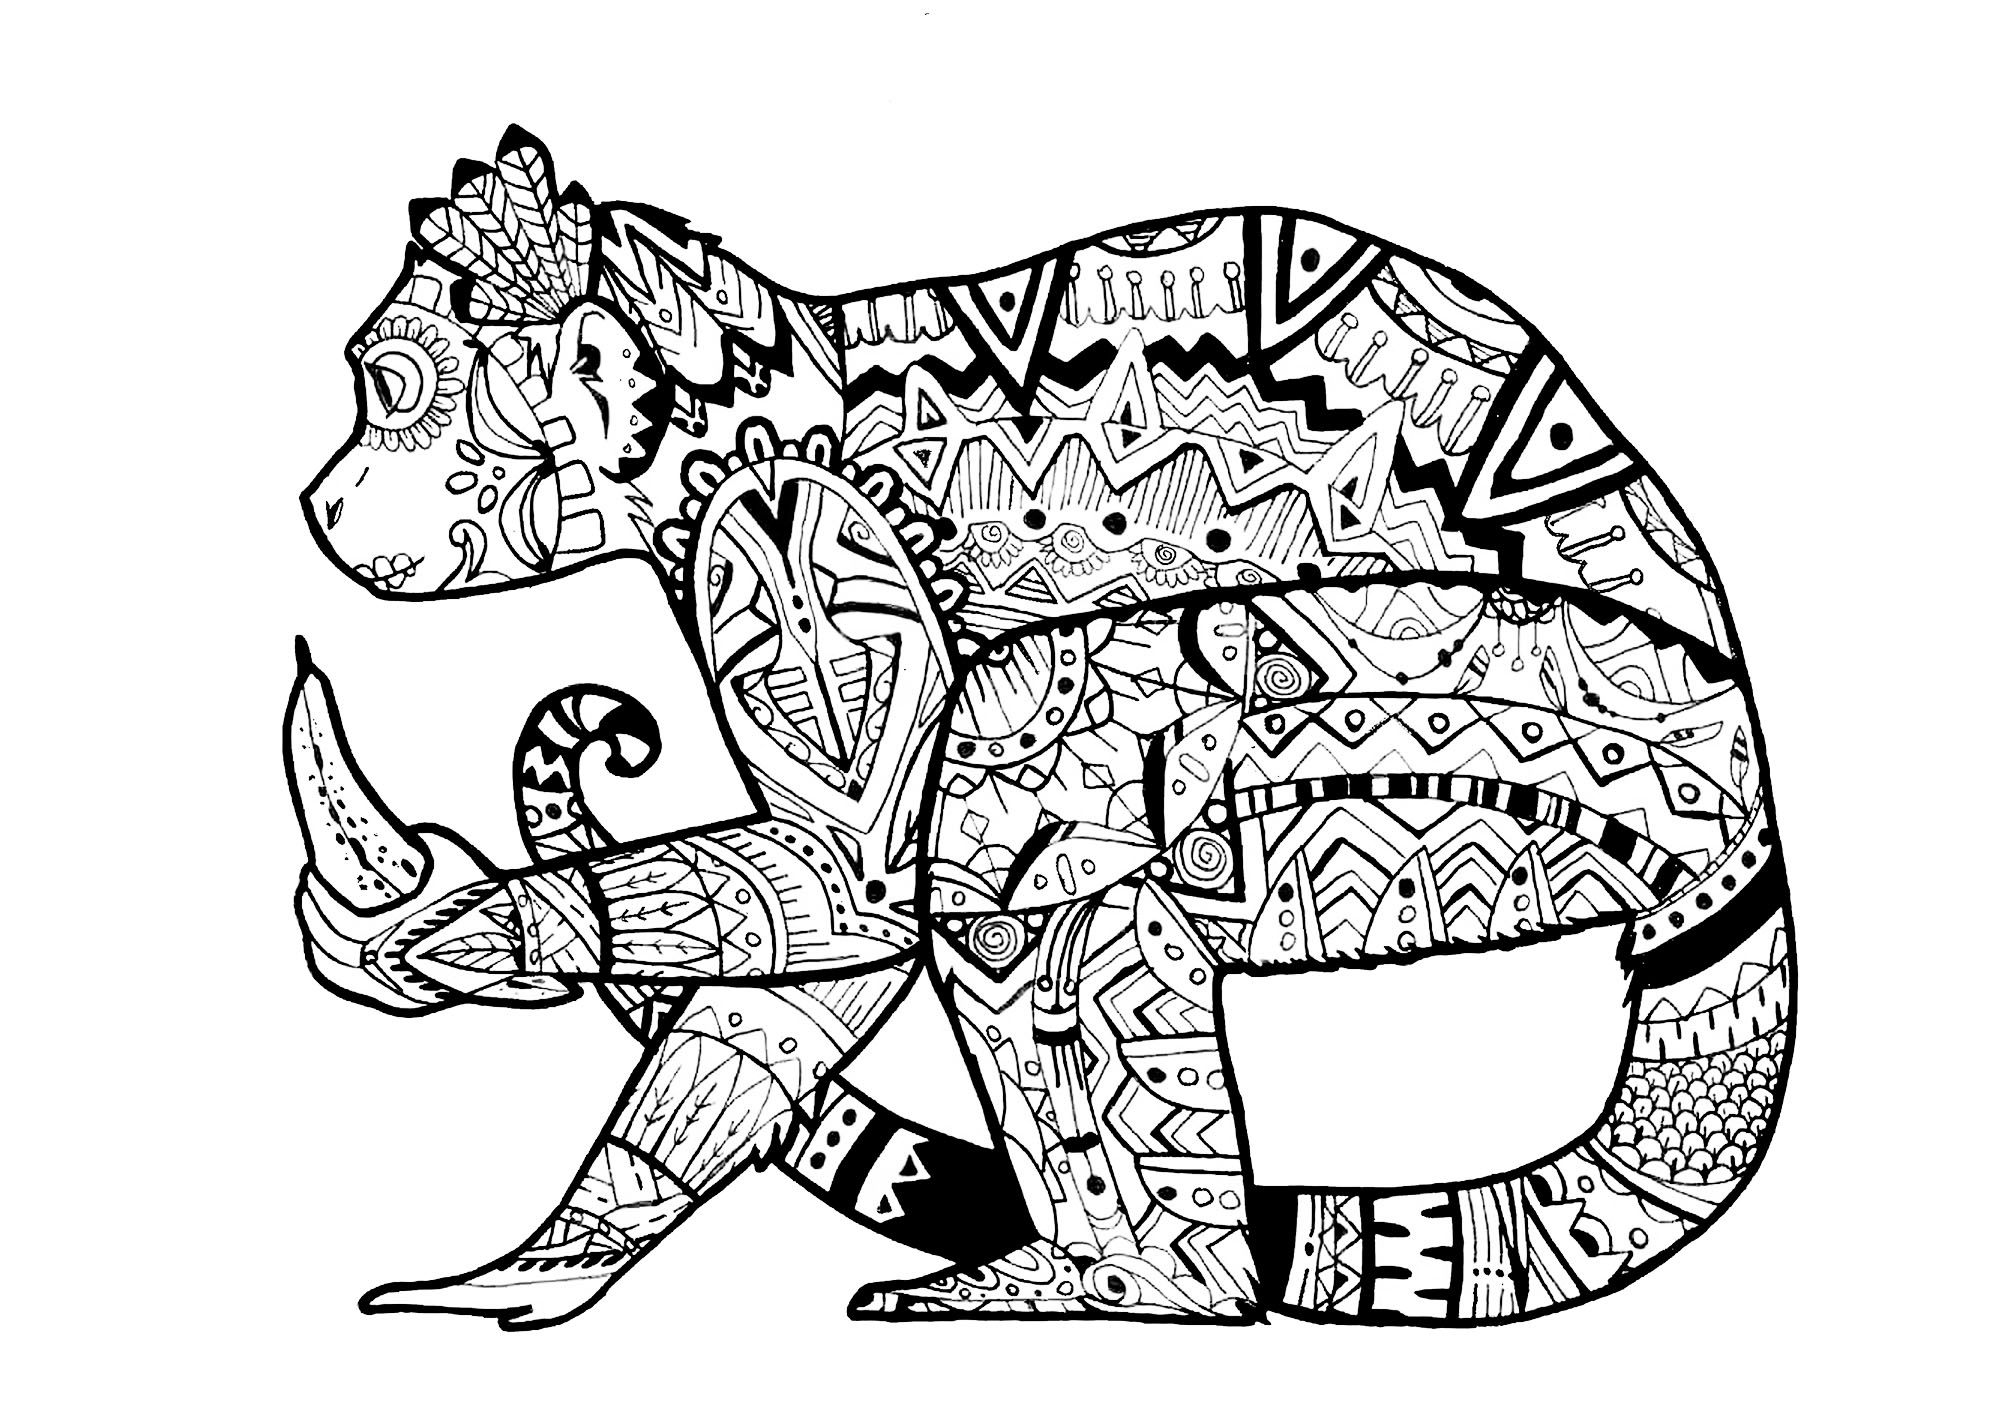 coloring monkey by paulined - Monkey Coloring Pages